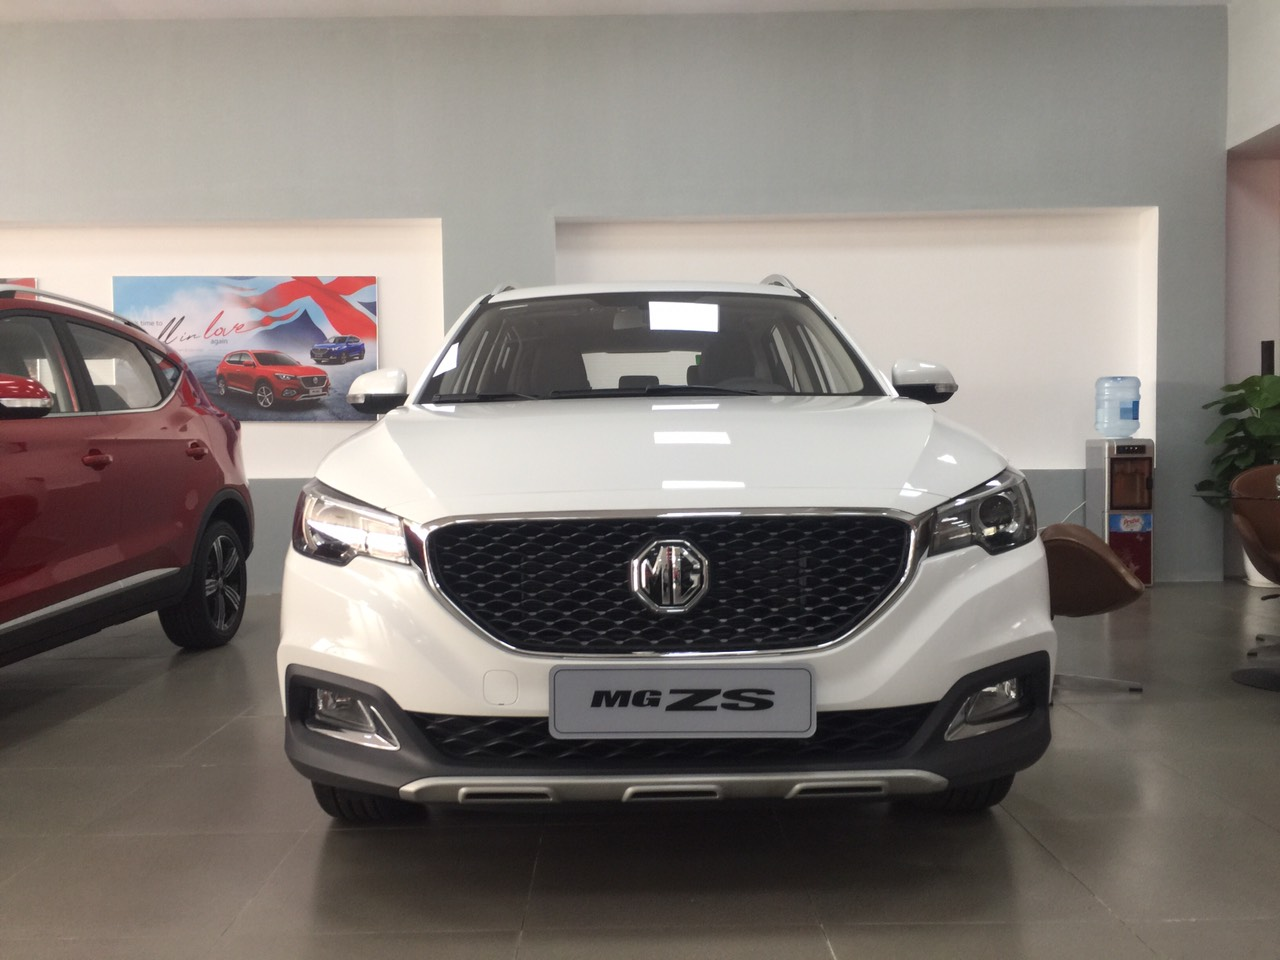 MG ZS 1.5 2WD Comfort